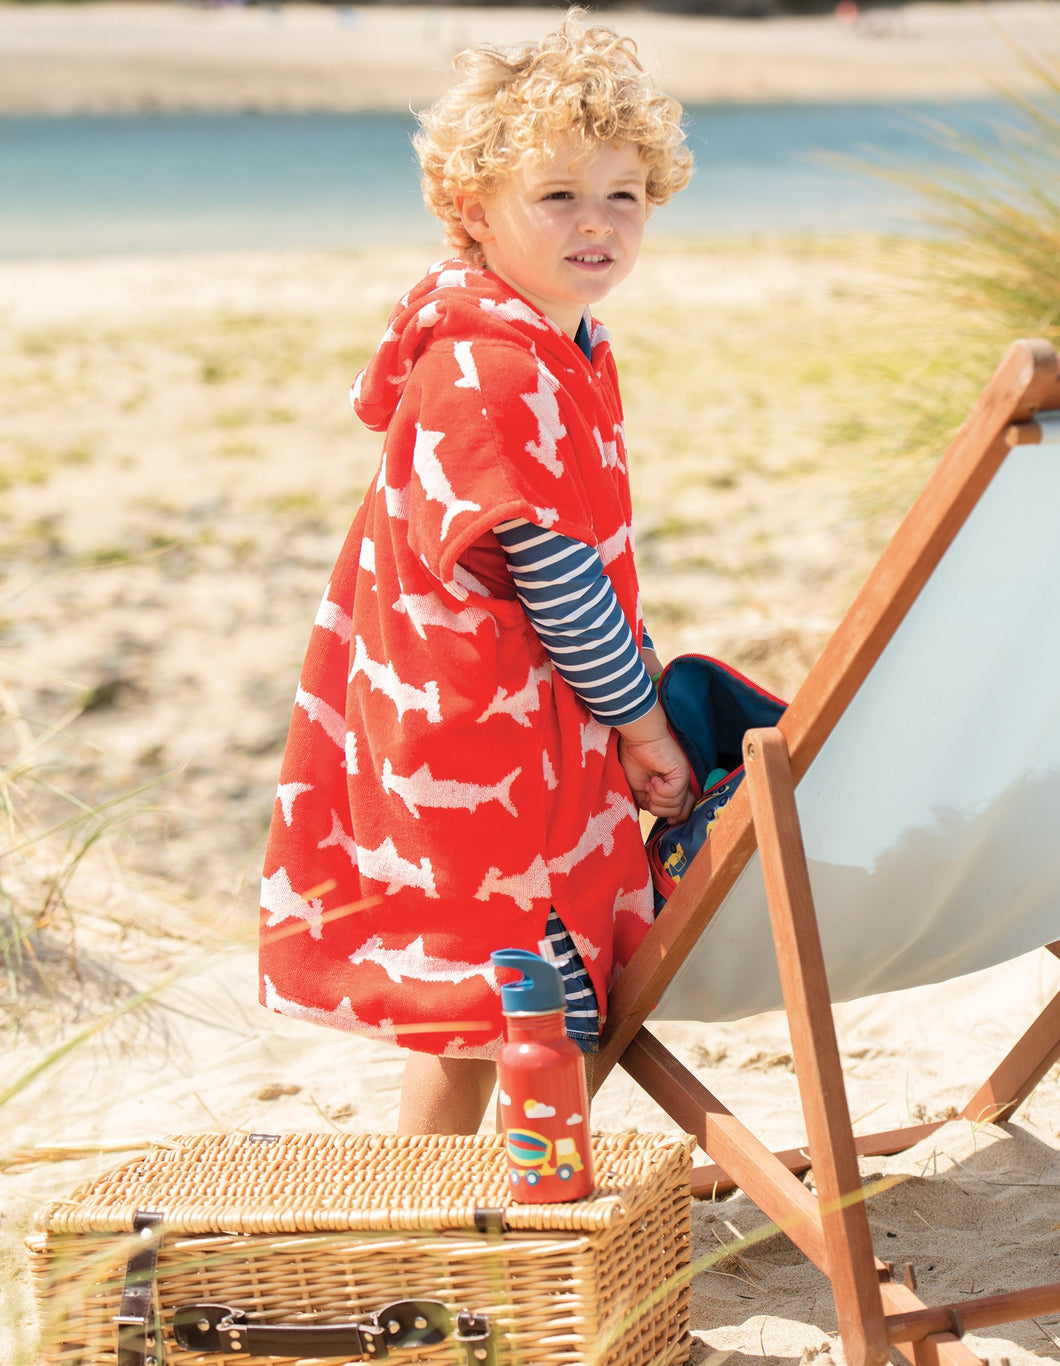 Frugi Havana Hooded Towel Hammerhead Sharks